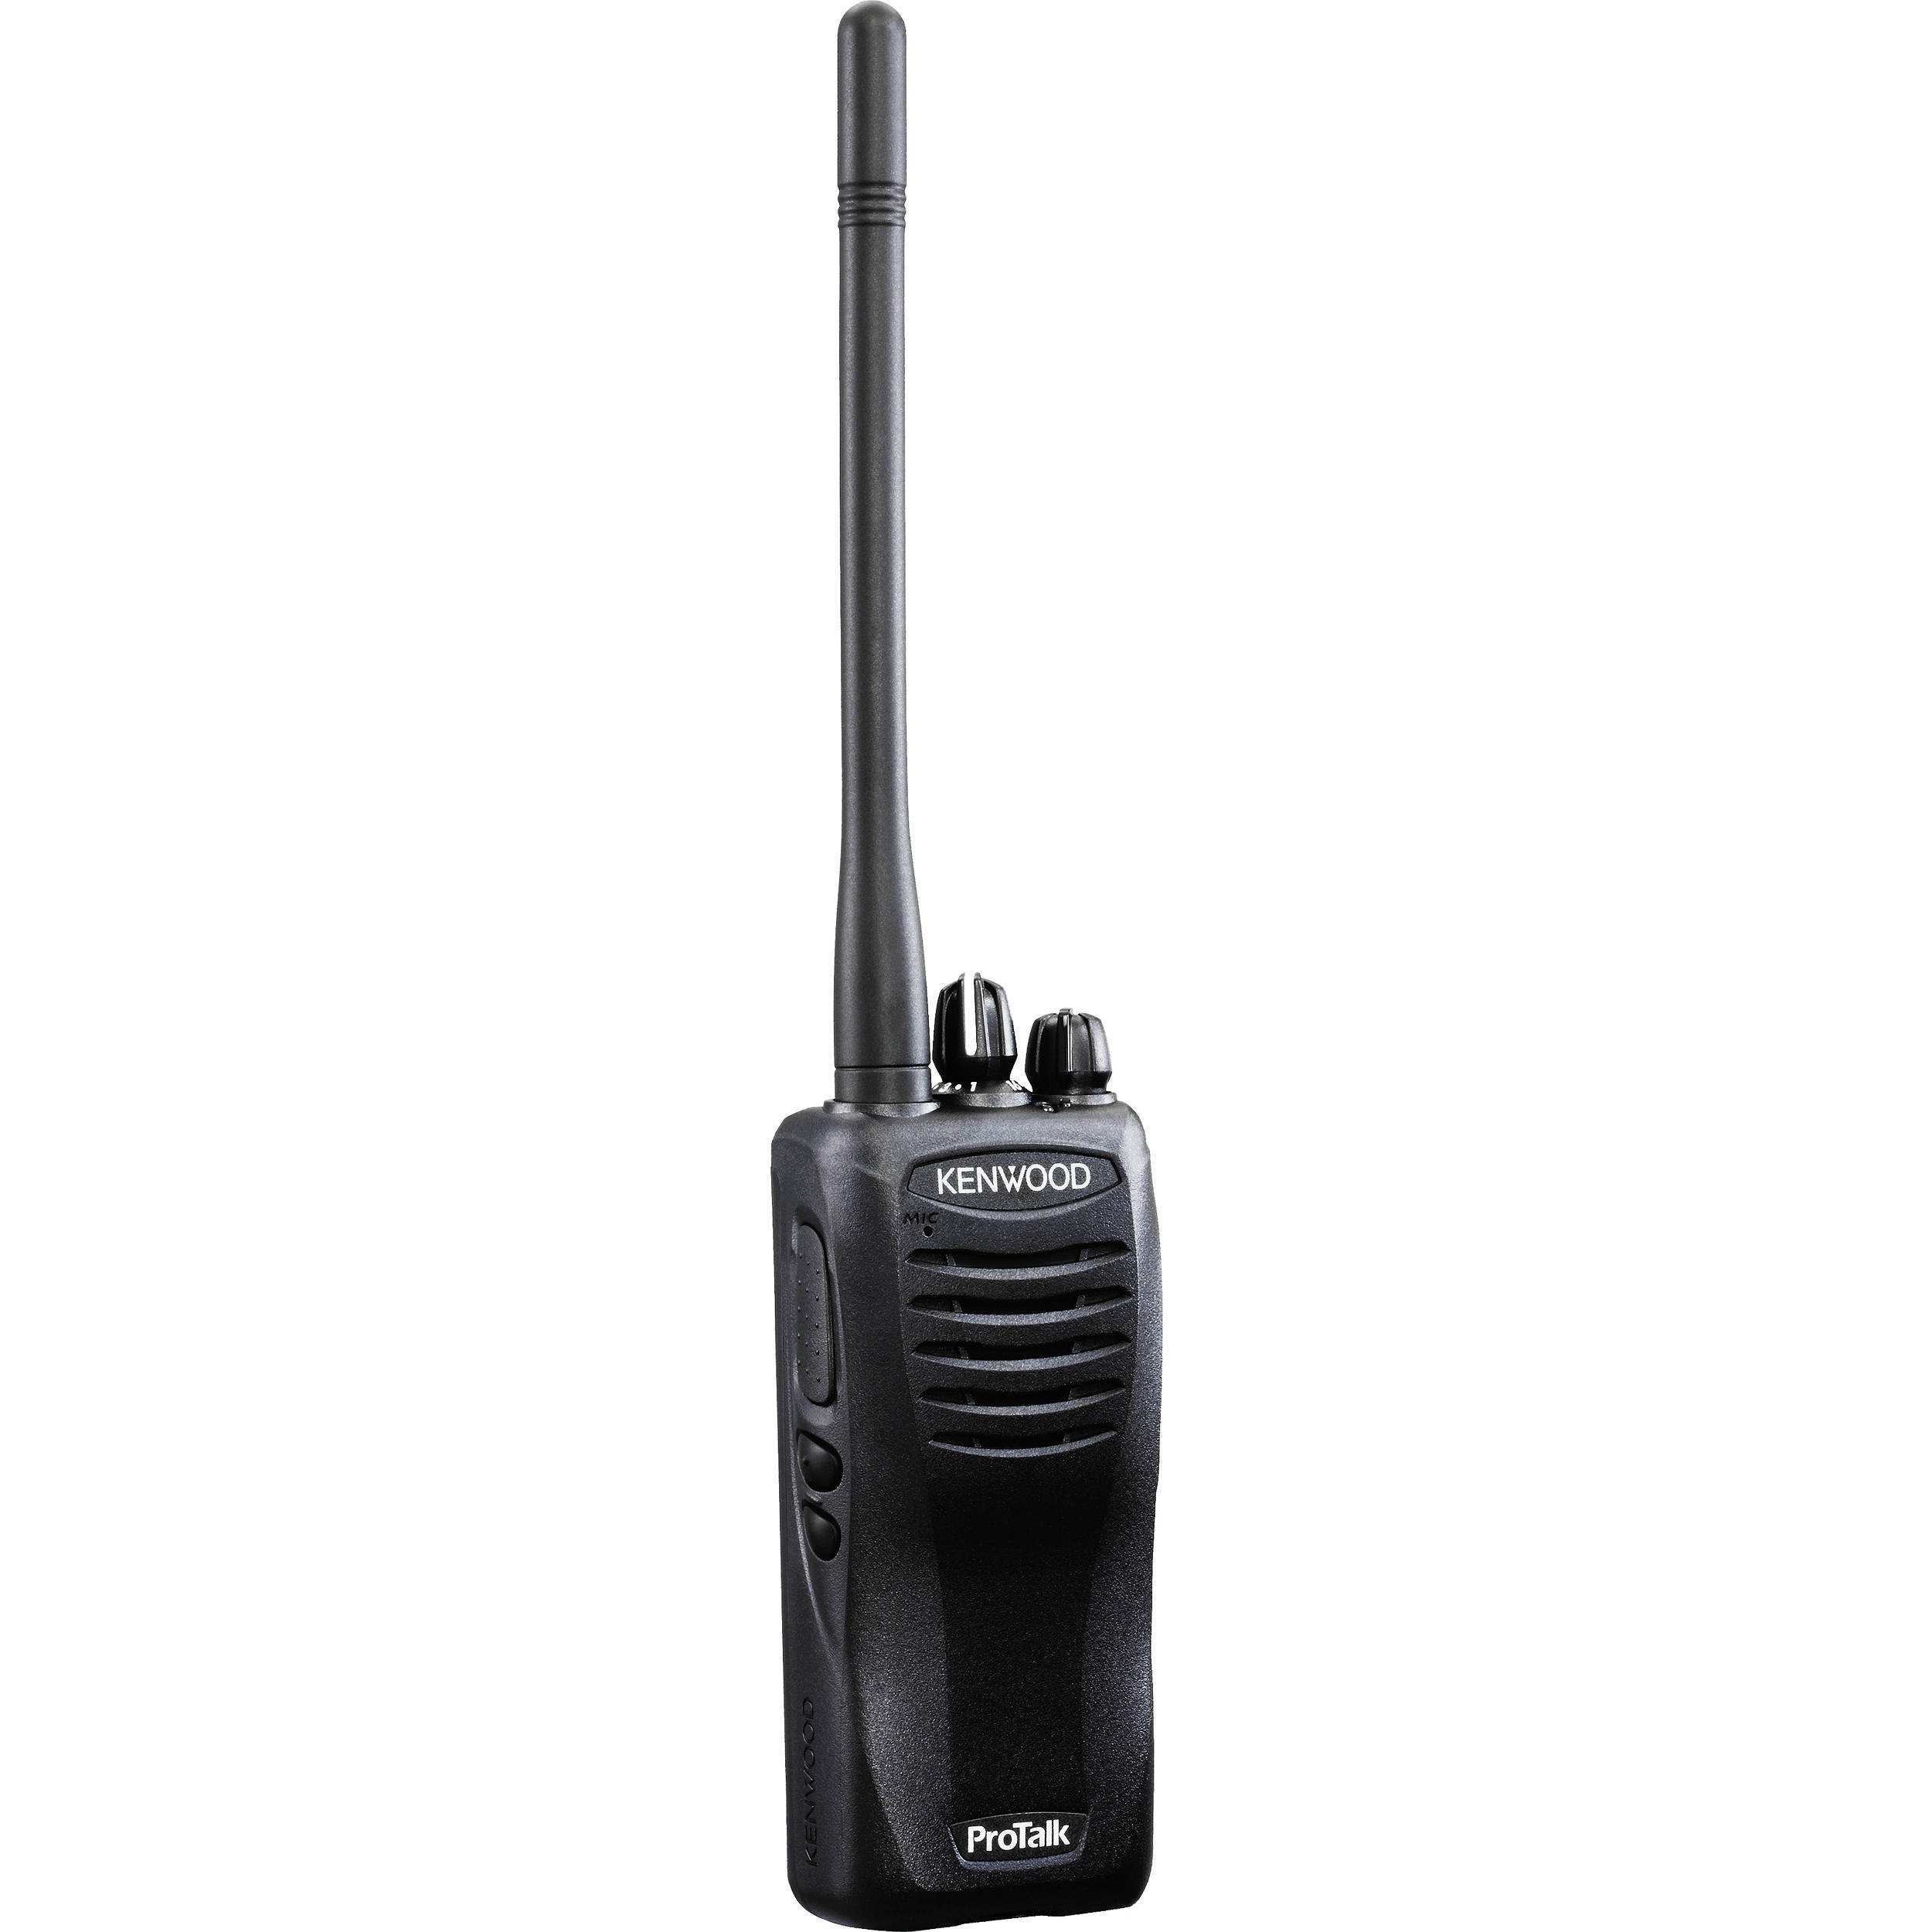 kenwood tk 2402v16p compact vhf fm 5w portable radio tk 2402v16p. Black Bedroom Furniture Sets. Home Design Ideas